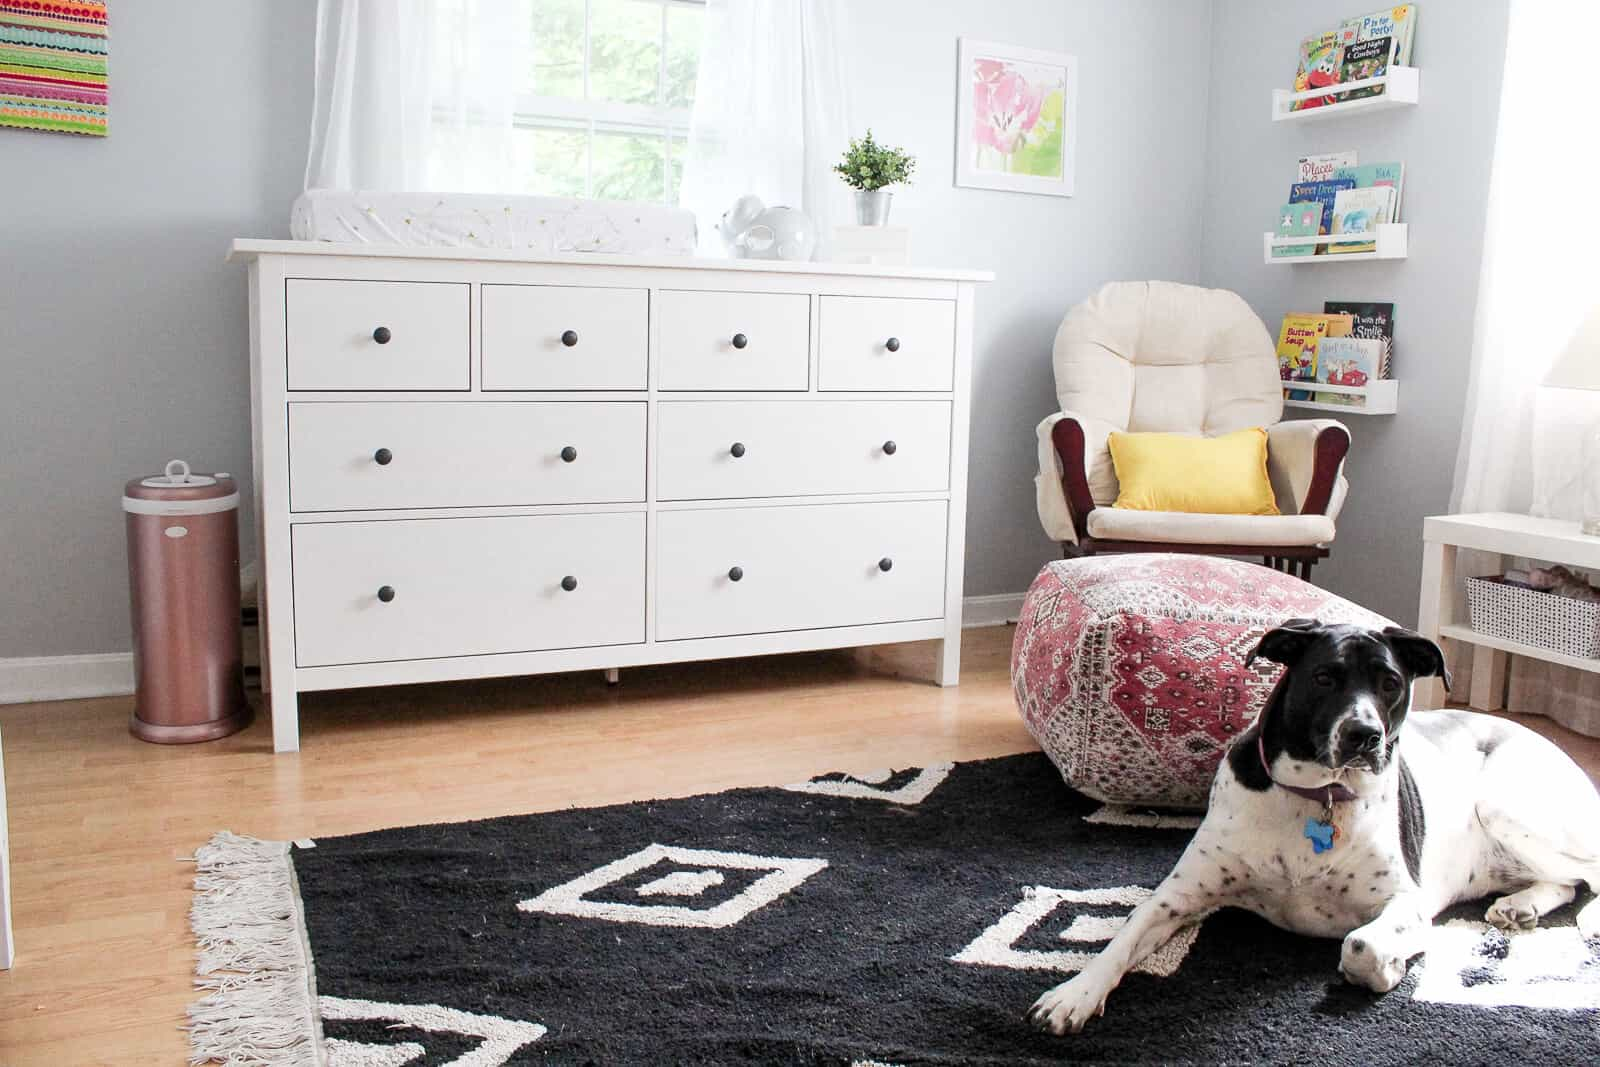 View of dresser and glider in modern baby girl bedroom.